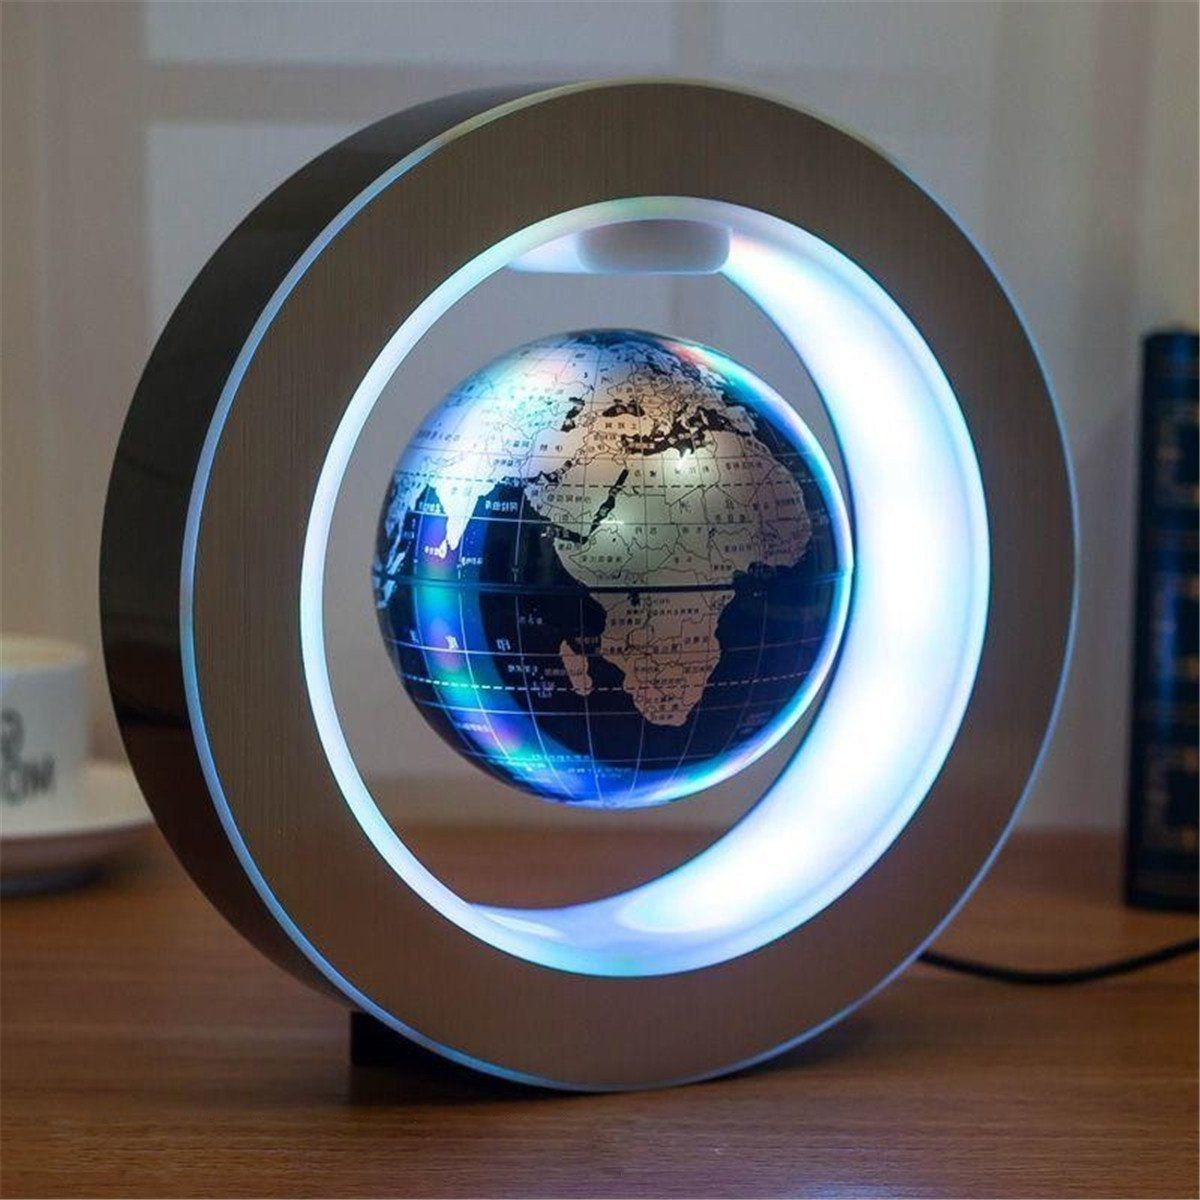 Package Included 1 X Magnetic Levitation Floating Globe Features Color Black Gold Blue Note Please Kindly L Floating Globe Magnetic Levitation Levitation